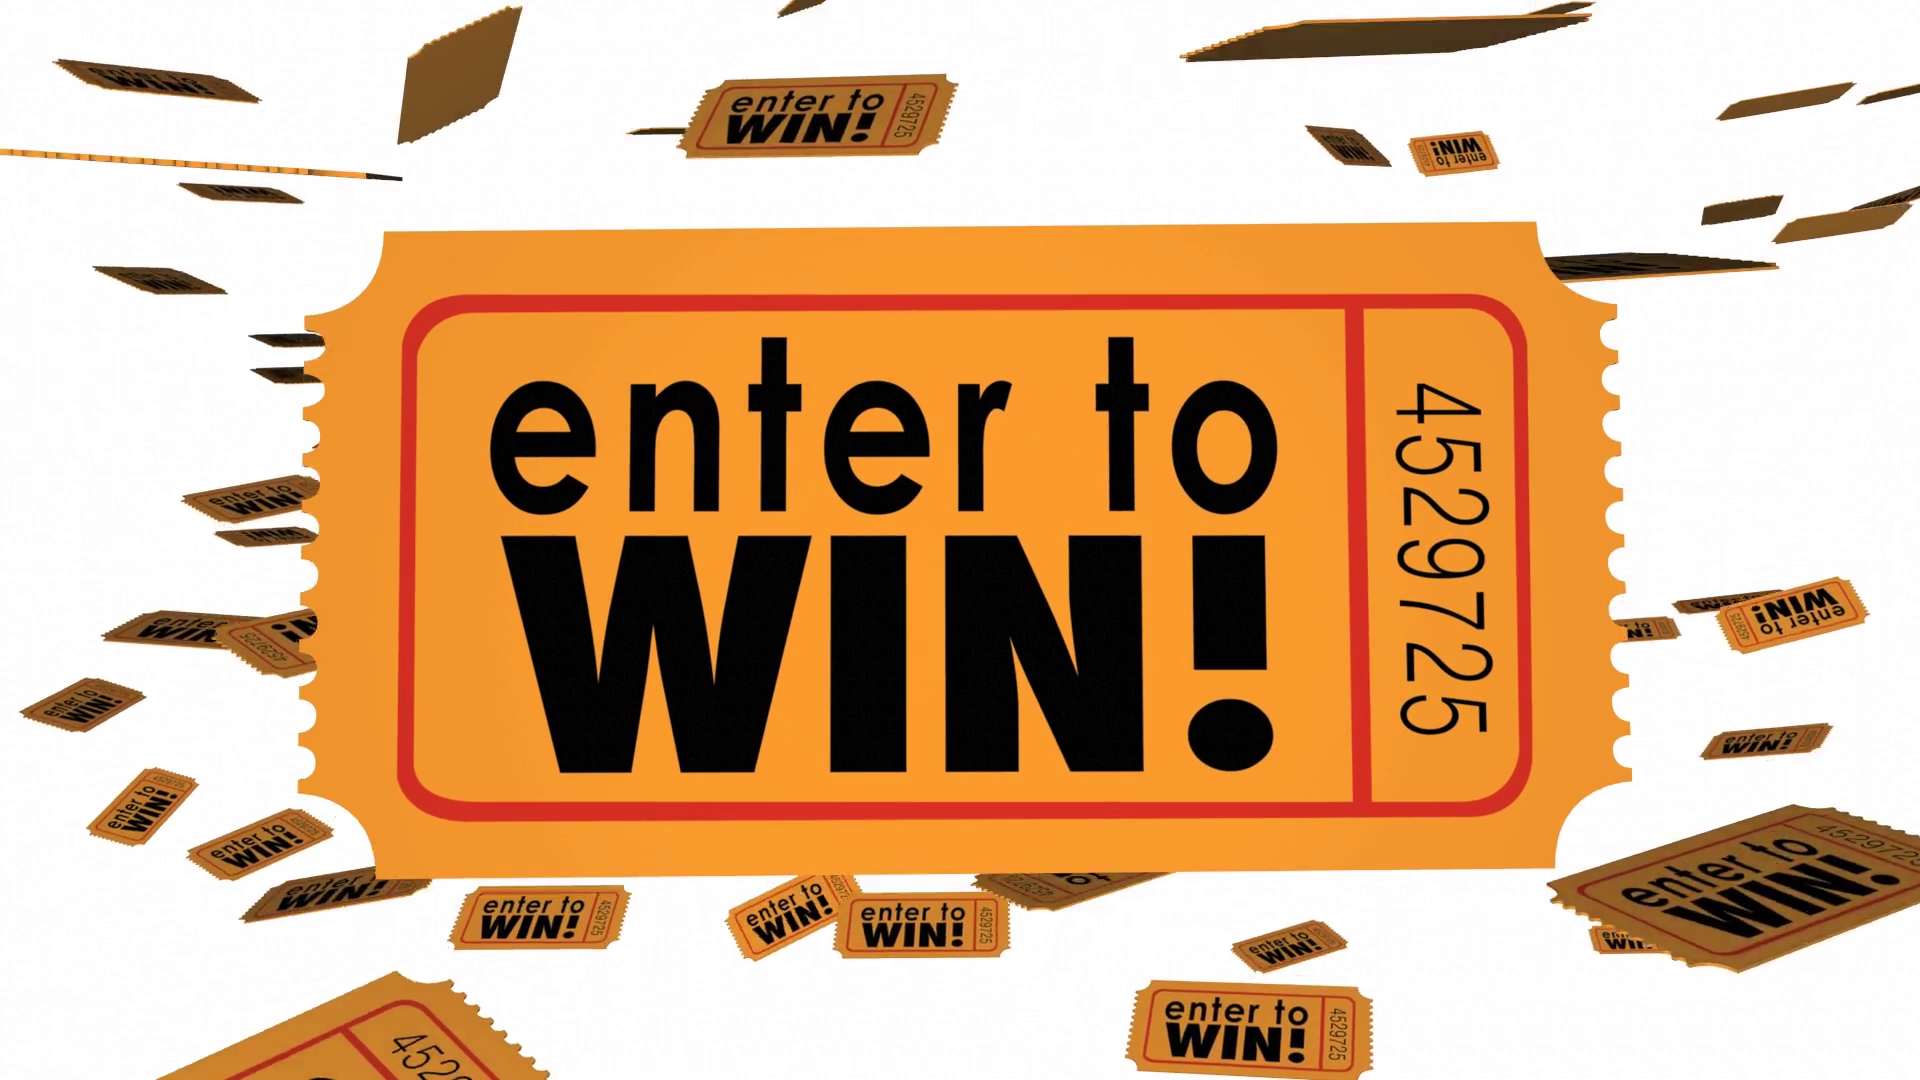 Raffle clipart lottery ticket. Enter to win contest